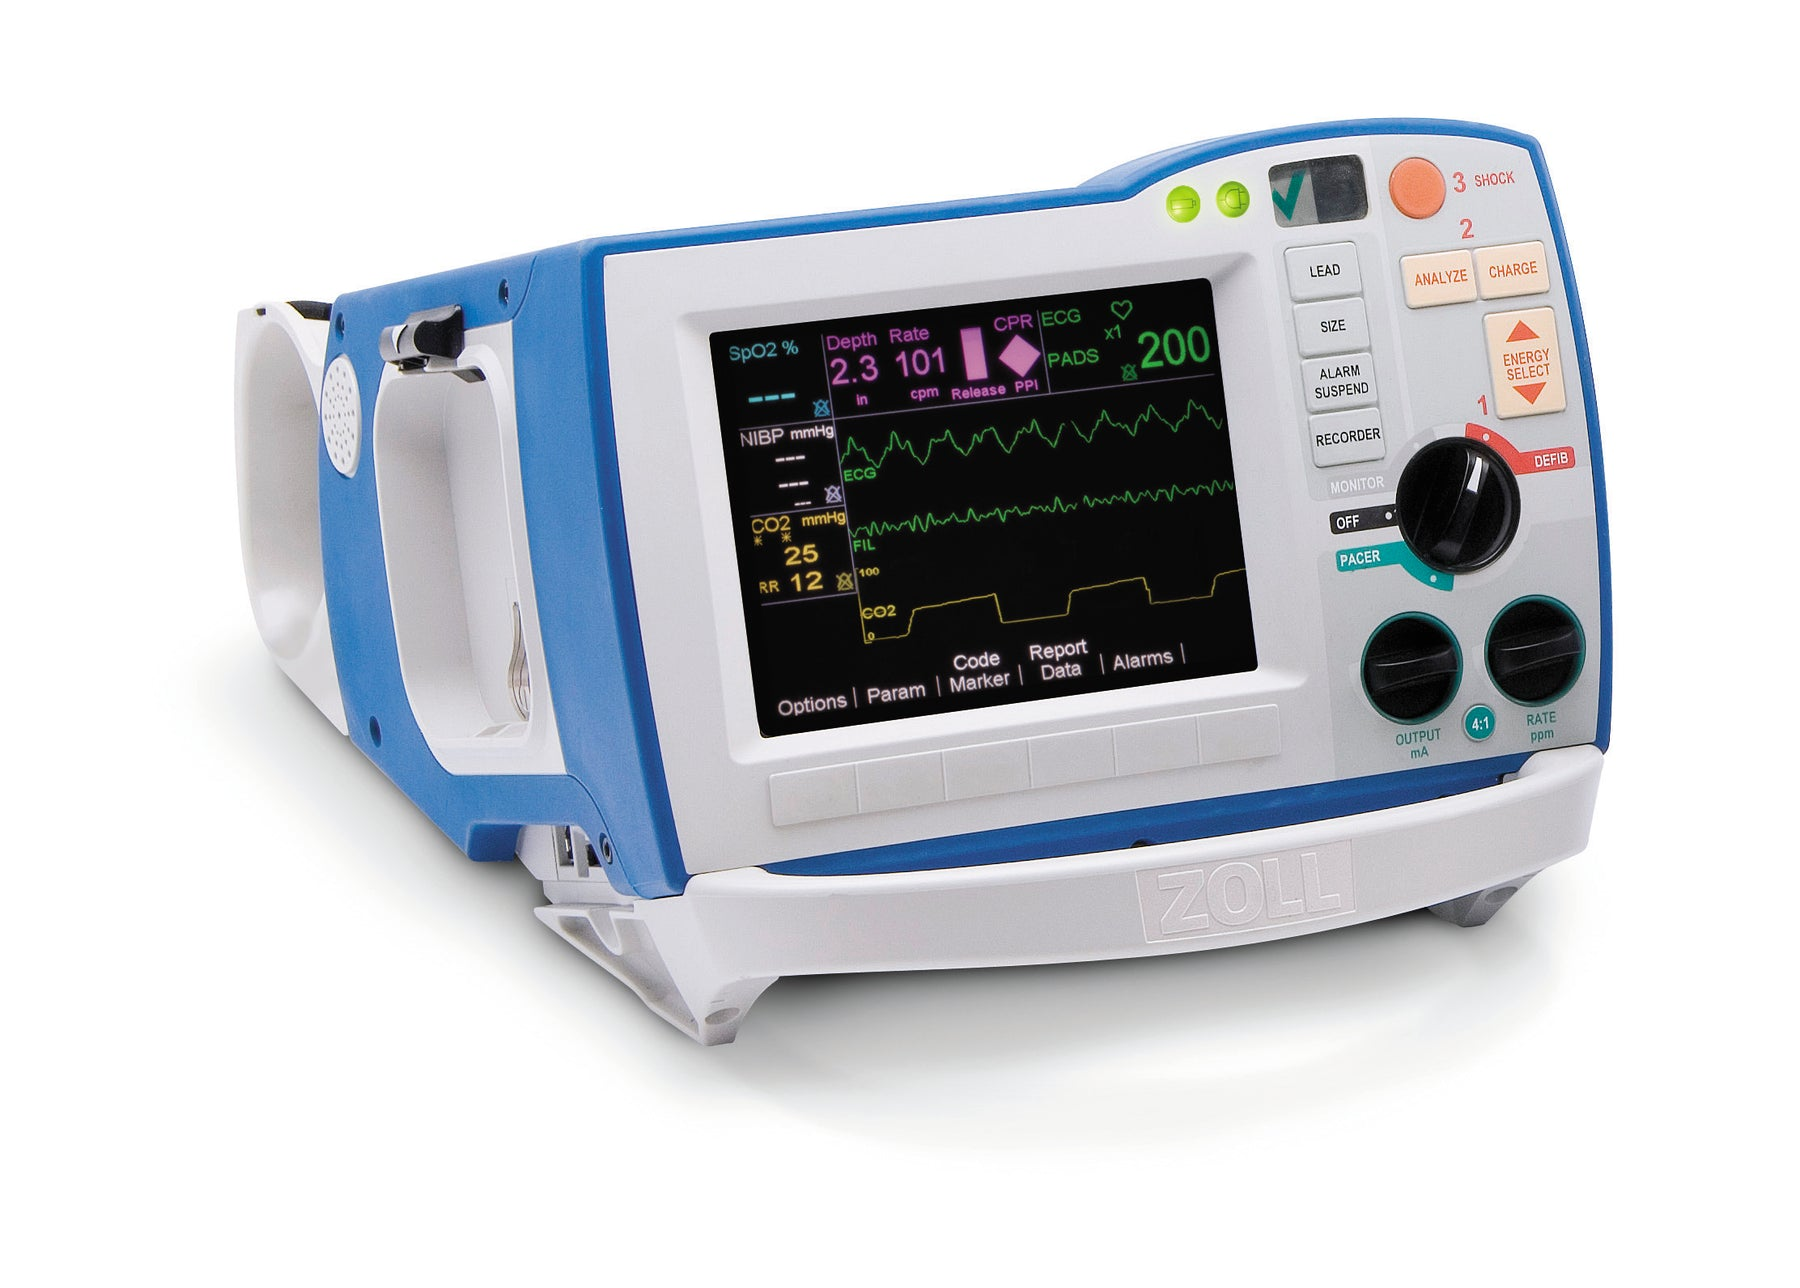 R Series ALS Defibrillator with OneStep Pacing- 30320000001130012